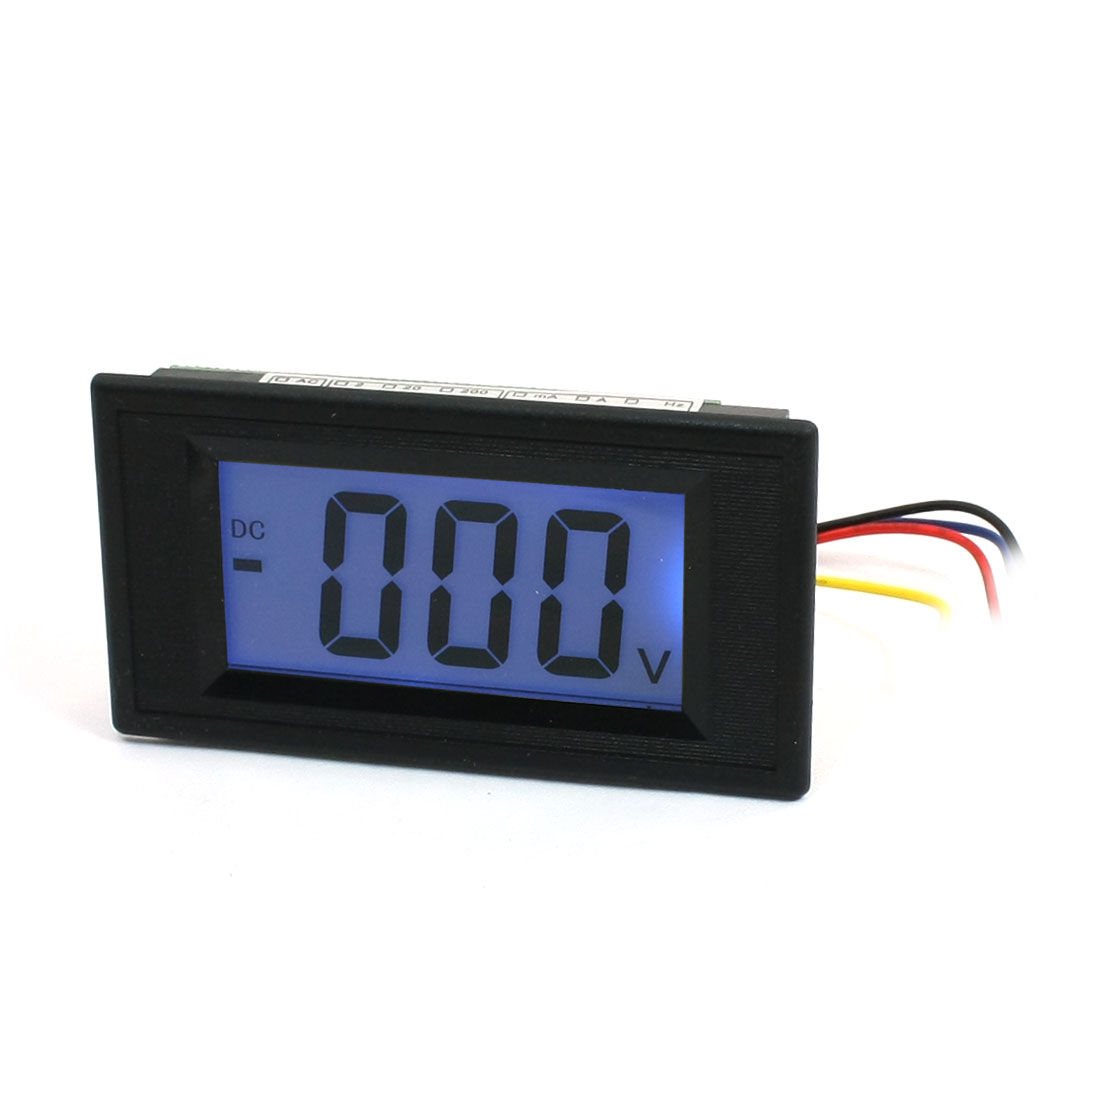 Blue-LCD-Display-3-Digits-DC-0-500V-Digital-Panel-Voltmeter